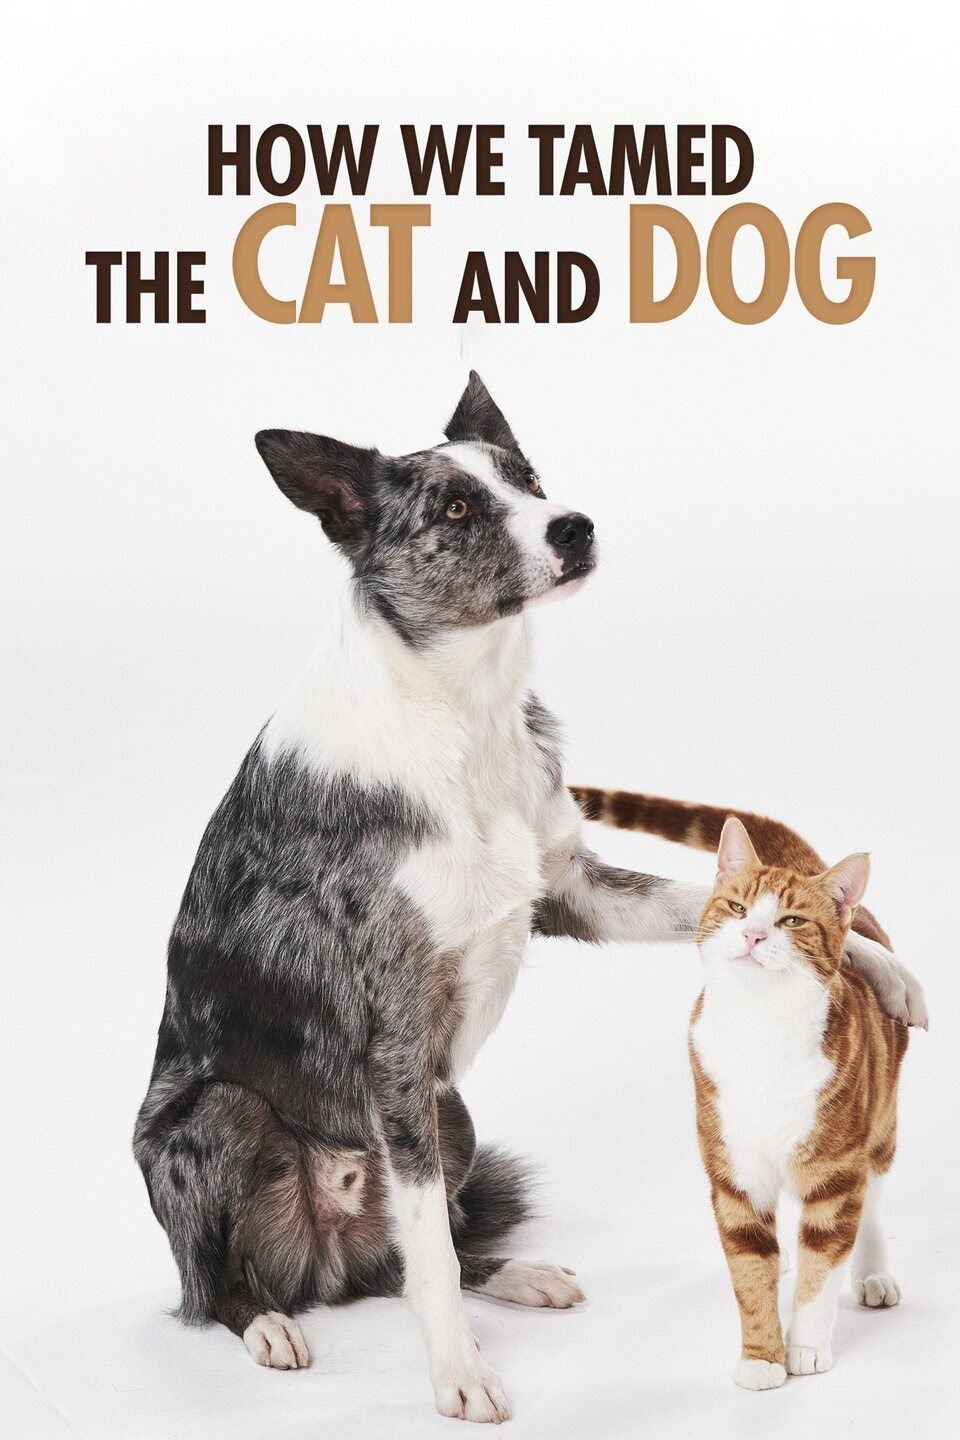 How We Tamed the Cat and Dog ne zaman